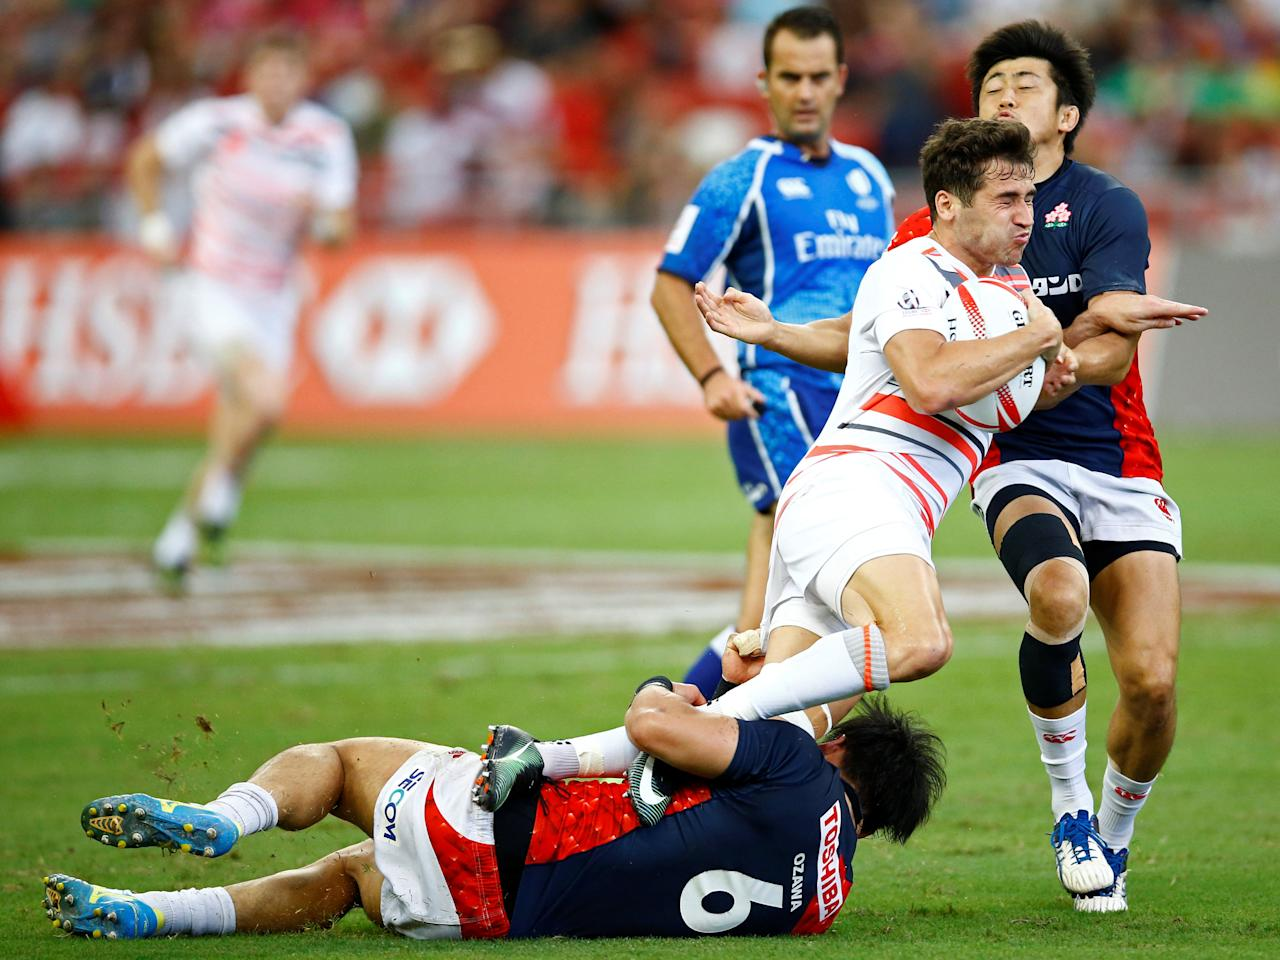 Rugby Union - Singapore Sevens - National Stadium, Singapore - 15/04/17 England's Oliver Lindsay-Hague is tackled by Japan's Dai Ozawa (L) and Kosuke Hashino. REUTERS/Yong Teck Lim